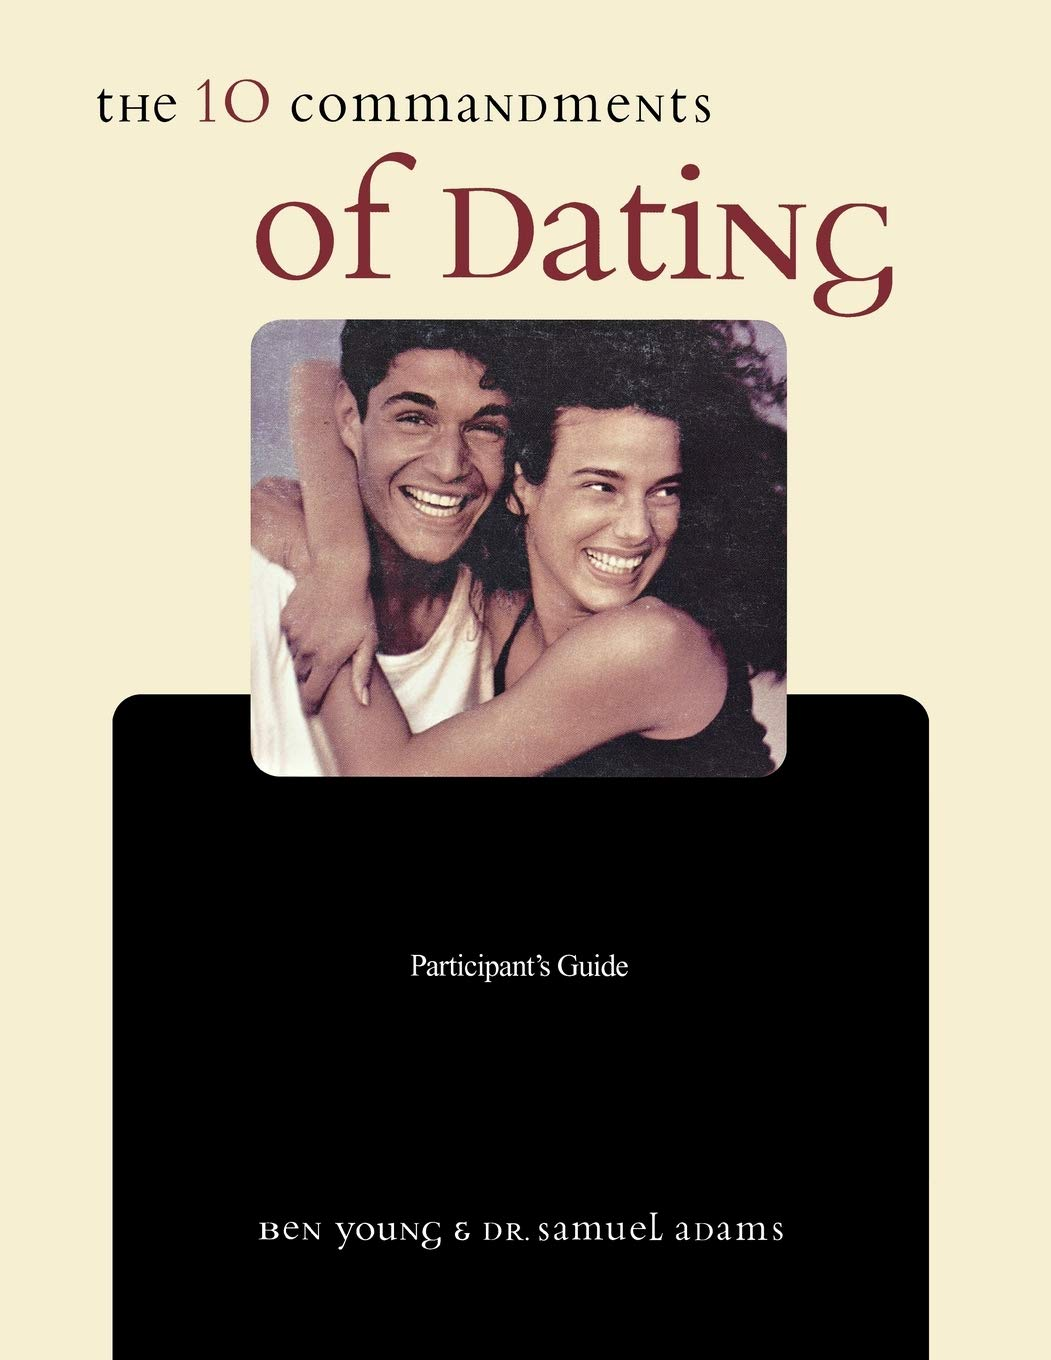 The ten commandments of dating book examples of funny dating profiles for women